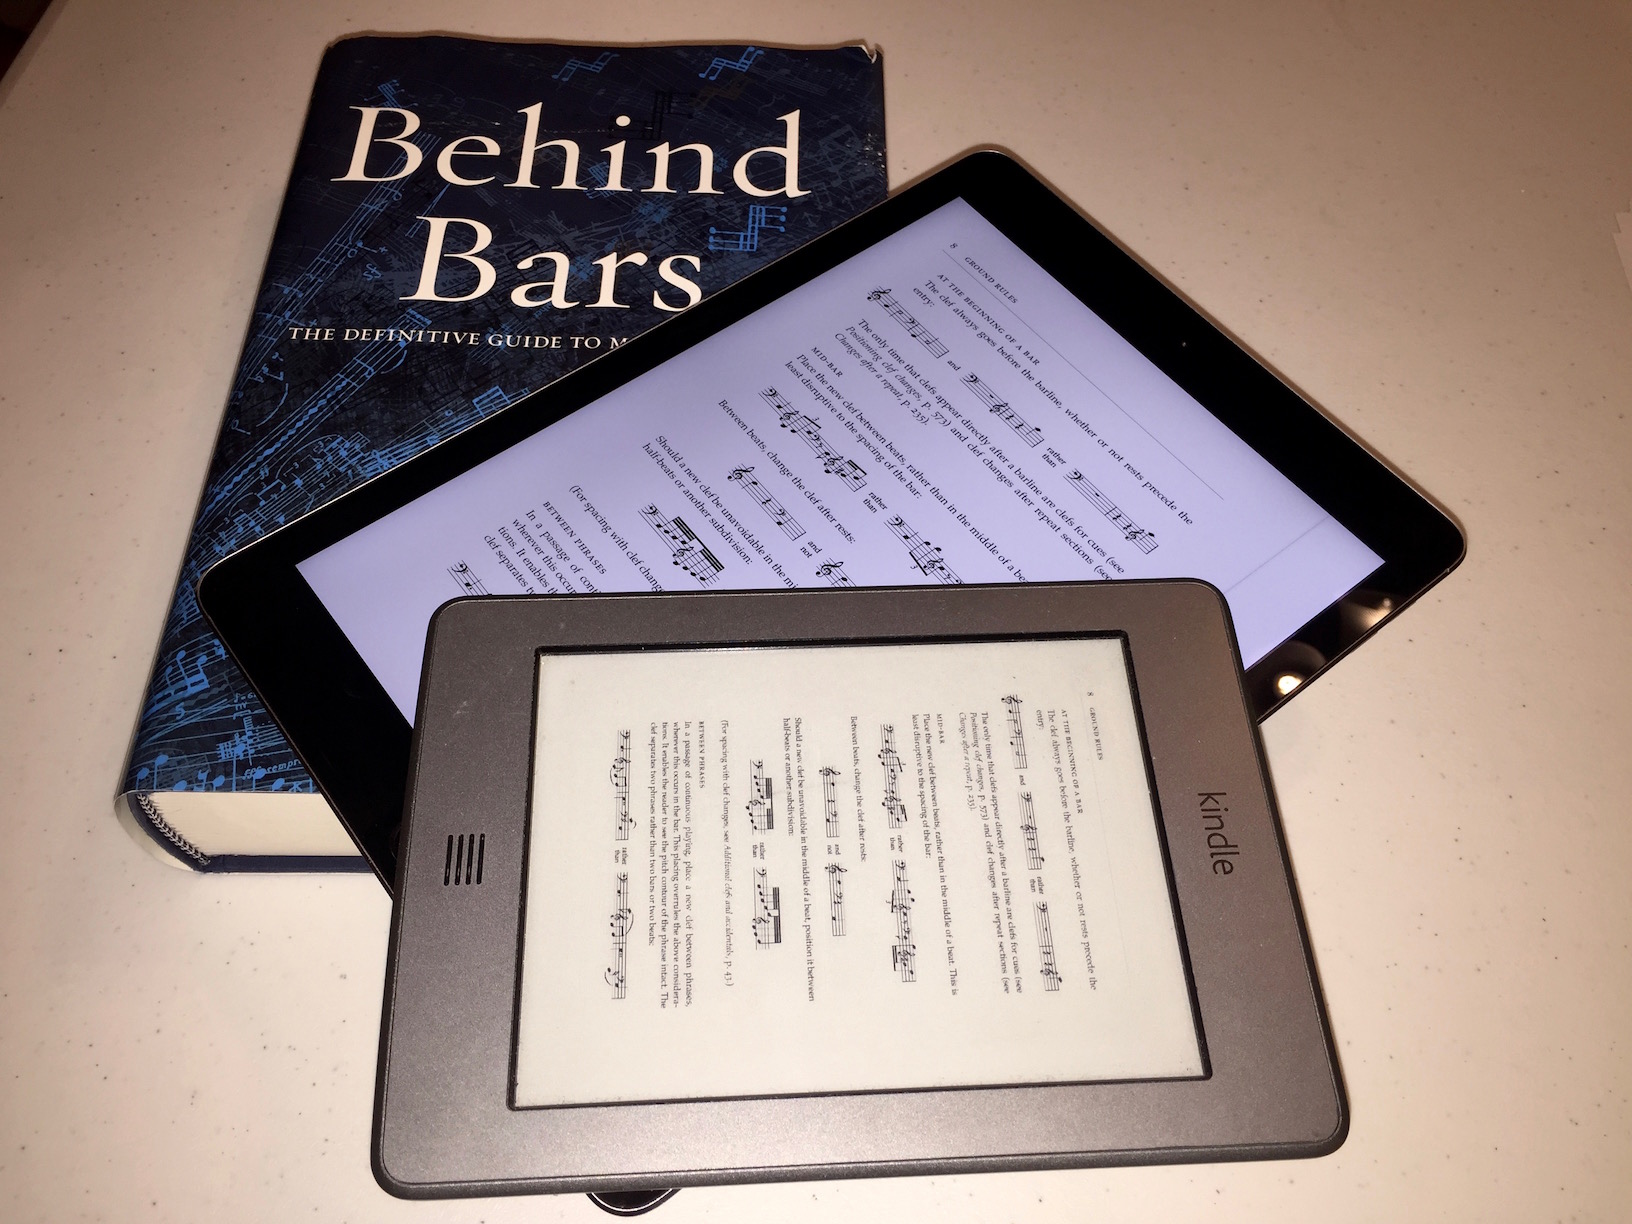 Elaine Gould's Behind Bars now available for Kindle and